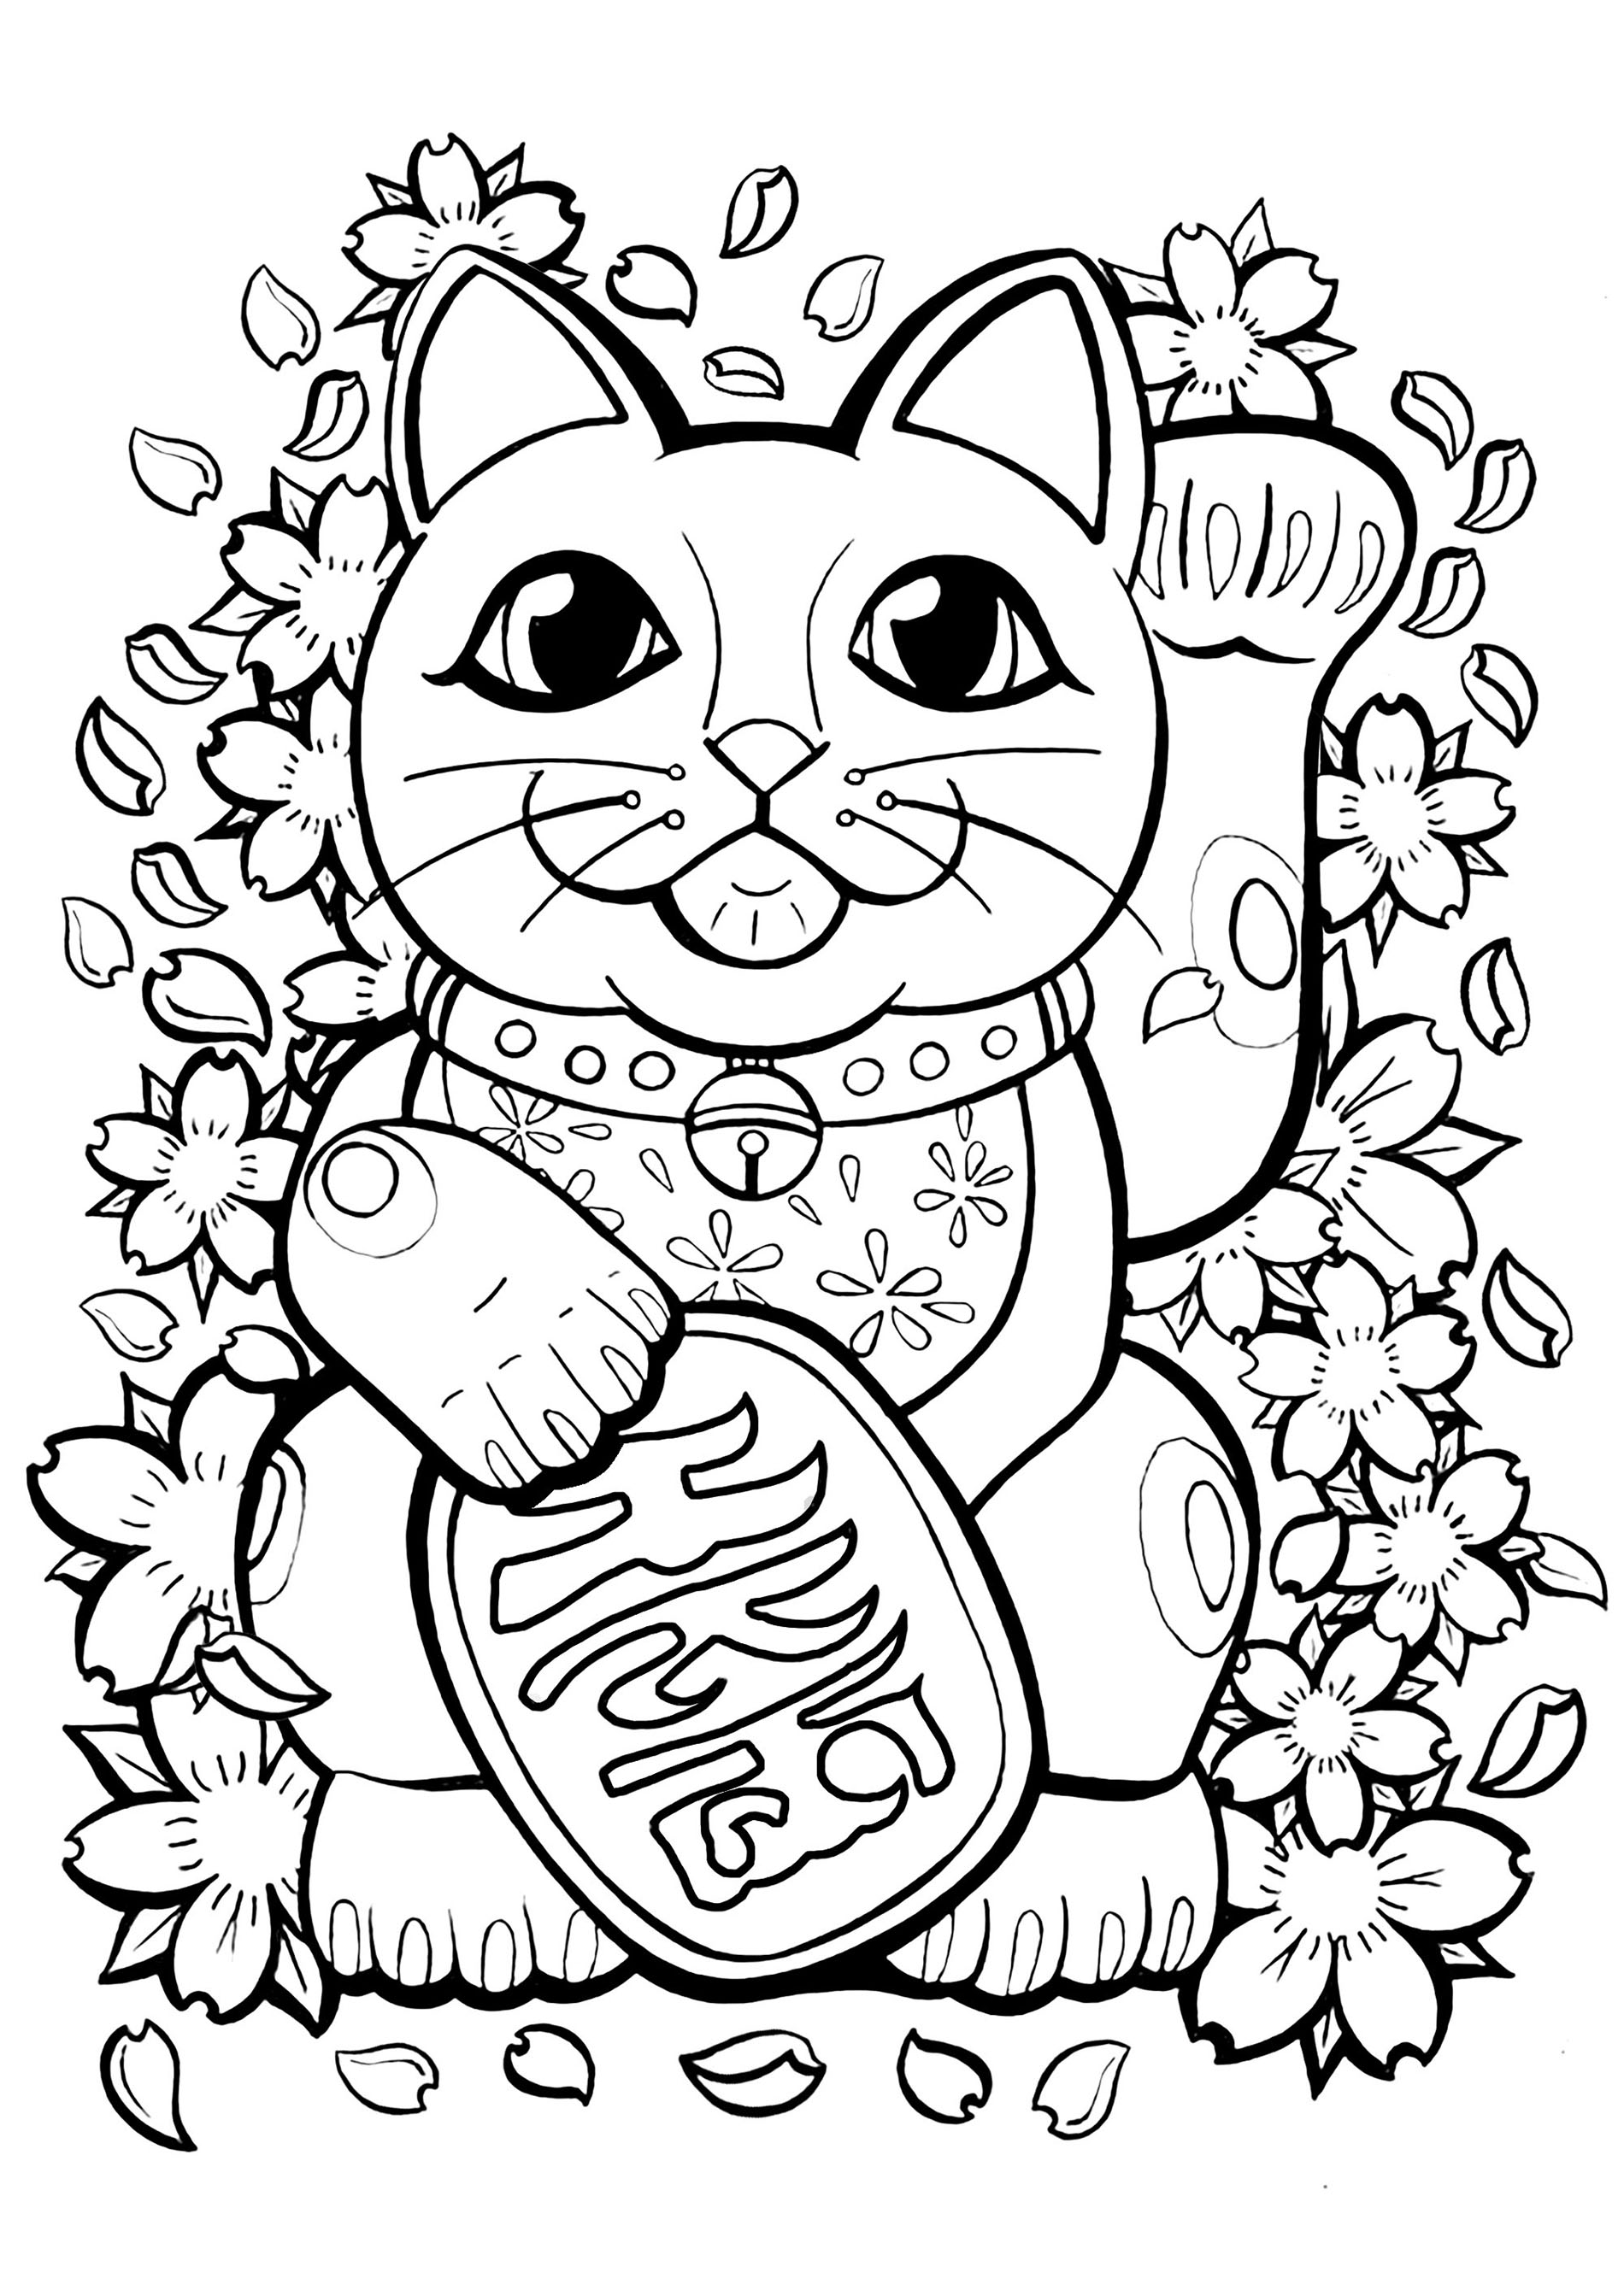 Beautiful Maneki Neko coloring page to print and color